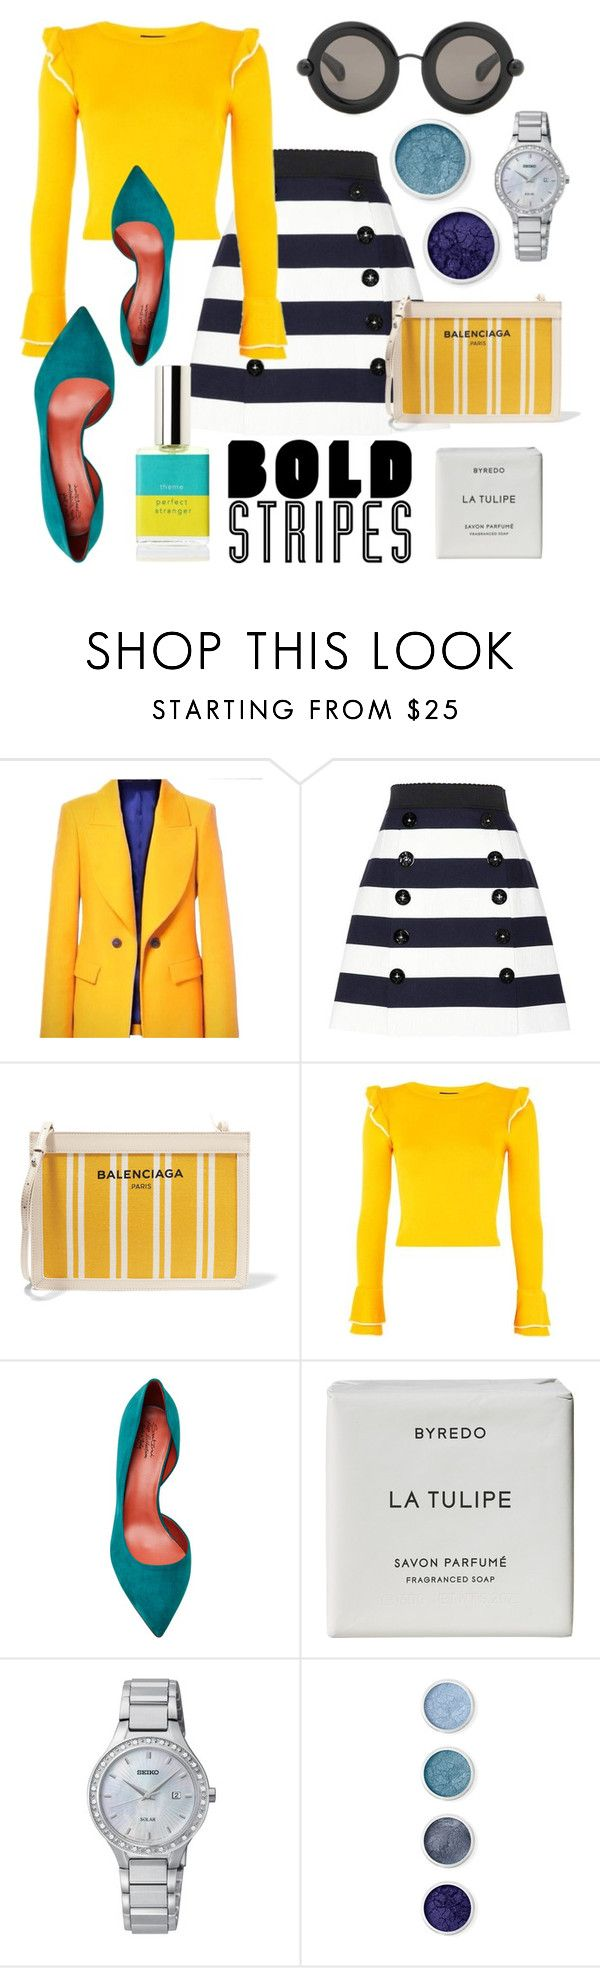 """""""Bold stripes"""" by sophier on Polyvore featuring Zara, Dolce&Gabbana, Balenciaga, Topshop, Byredo, Seiko Watches, Terre Mère and Christopher Kane"""